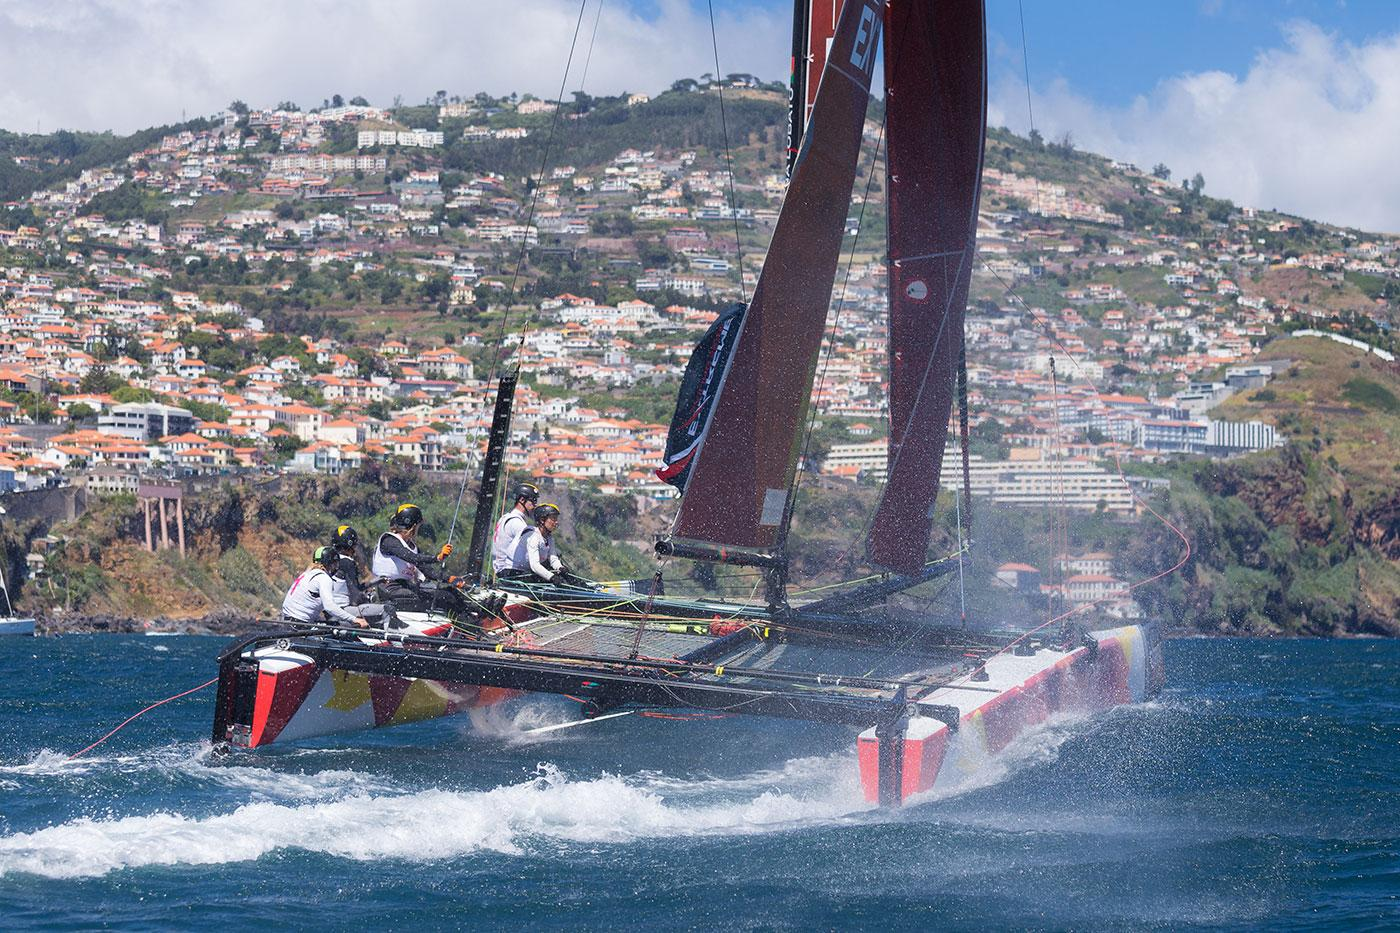 America's Cup is the professional sail racing